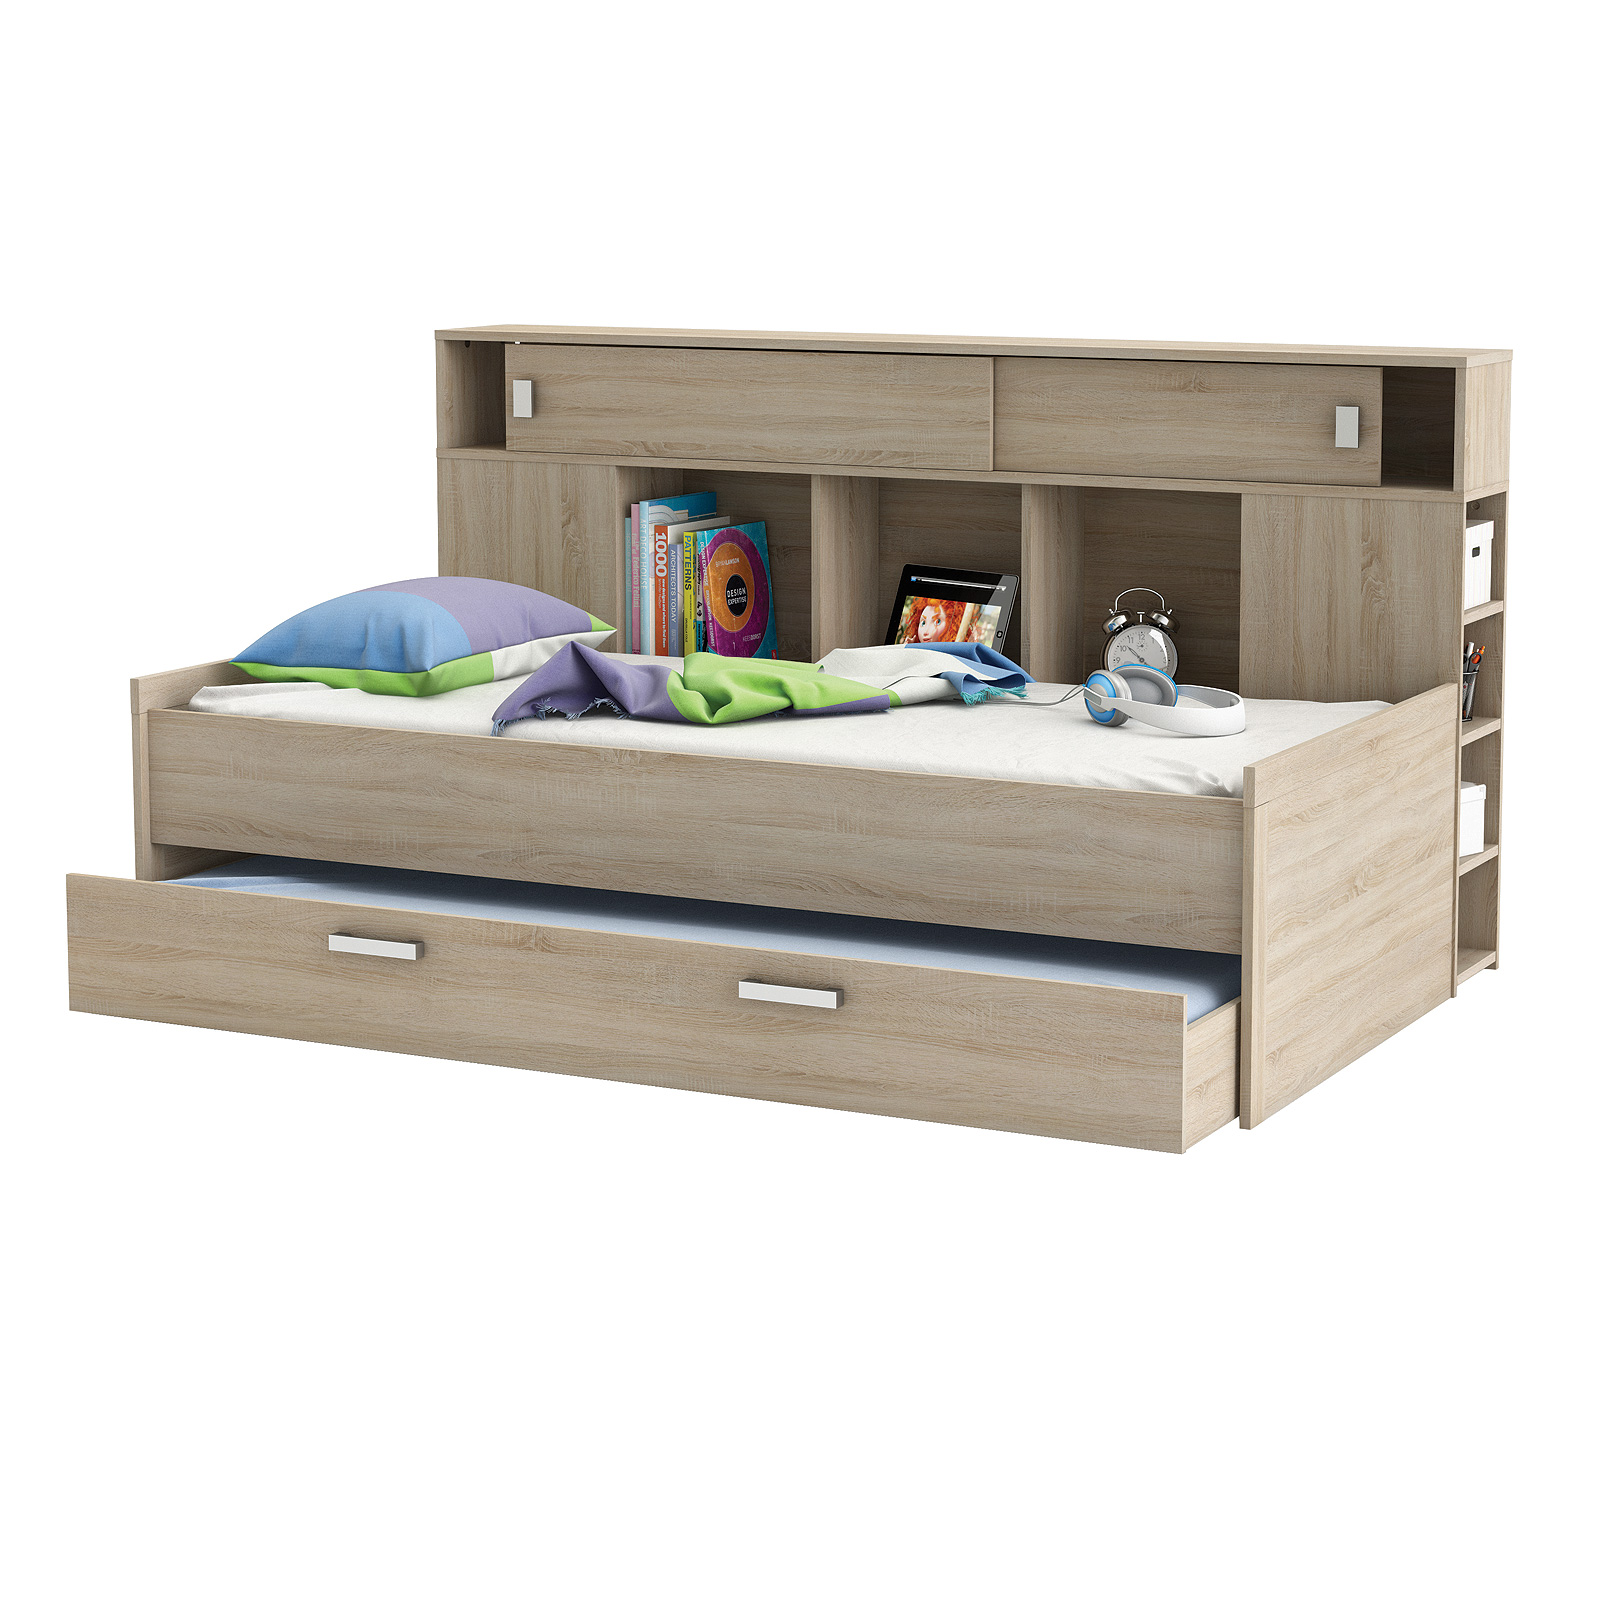 bett sherwood kinderbett jugendzimmerbett sonoma eiche mit bettkasten und regal. Black Bedroom Furniture Sets. Home Design Ideas